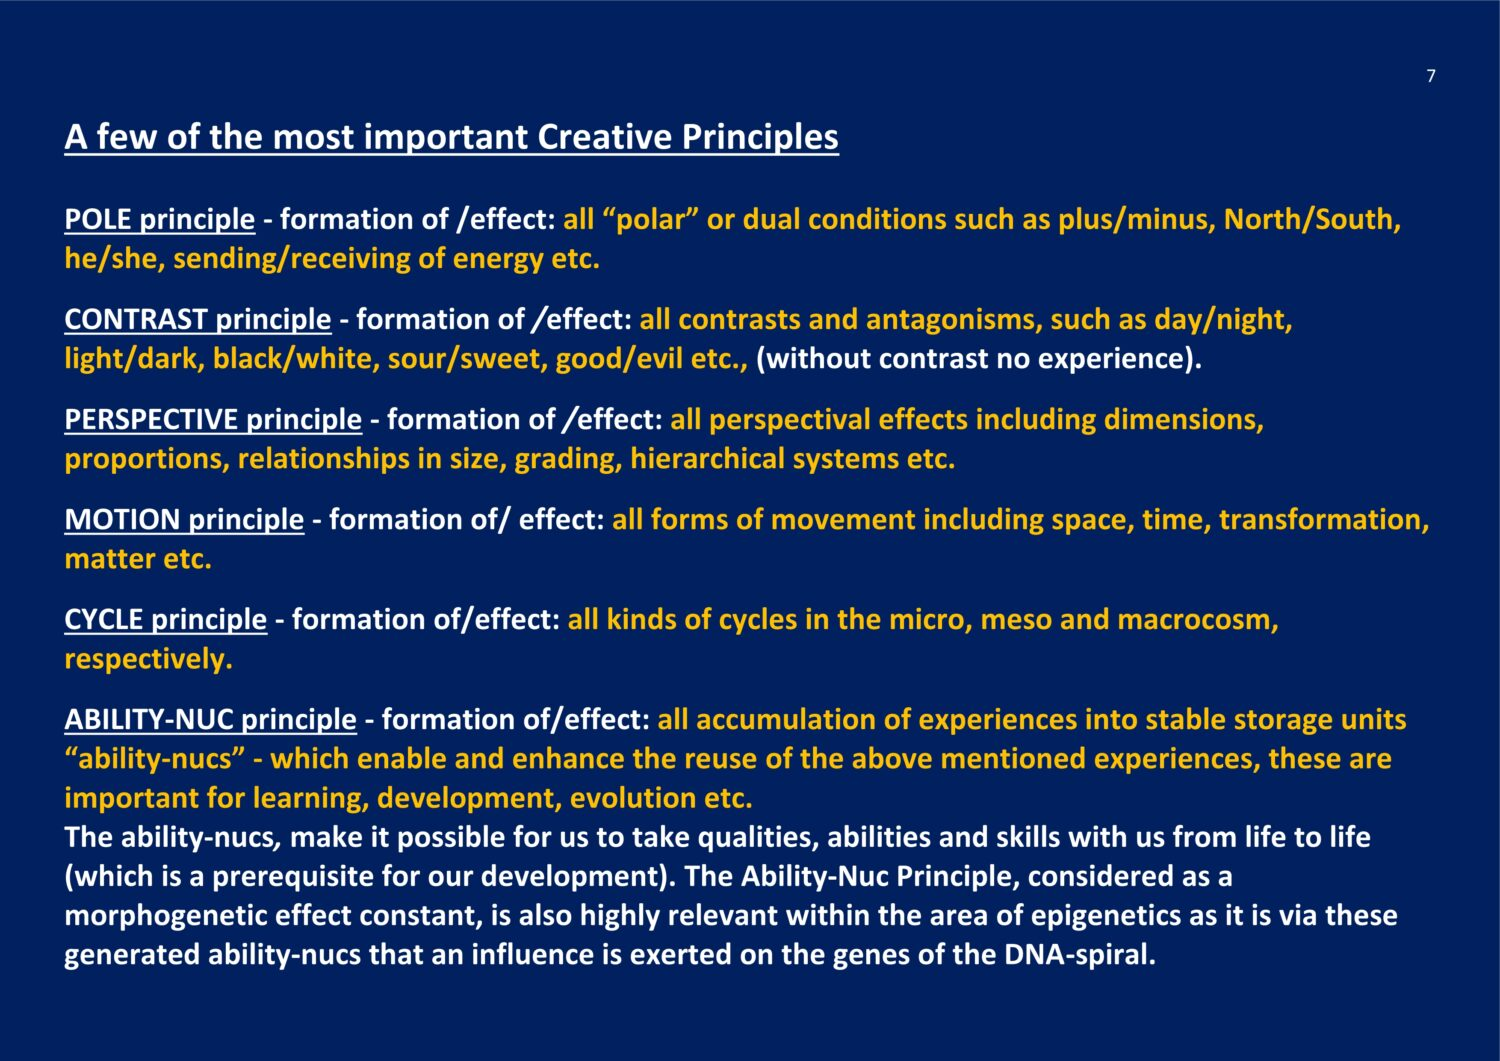 Cosmic Creative Principles NCP X-AIONS